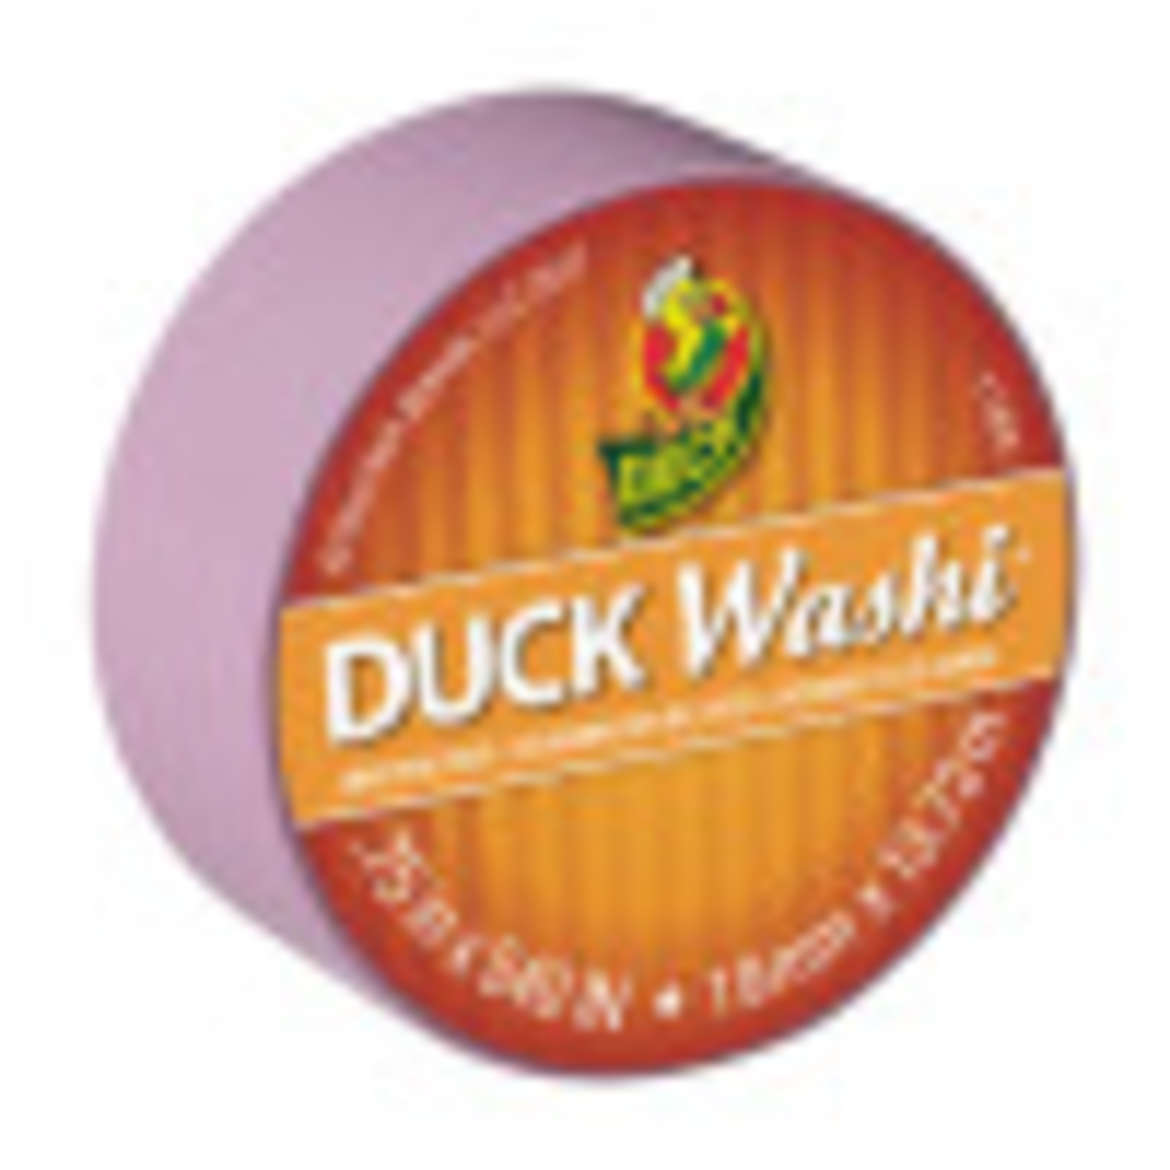 Duck Washi® Crafting Tape - Purple, 0.75 in. X 15 yd. Image